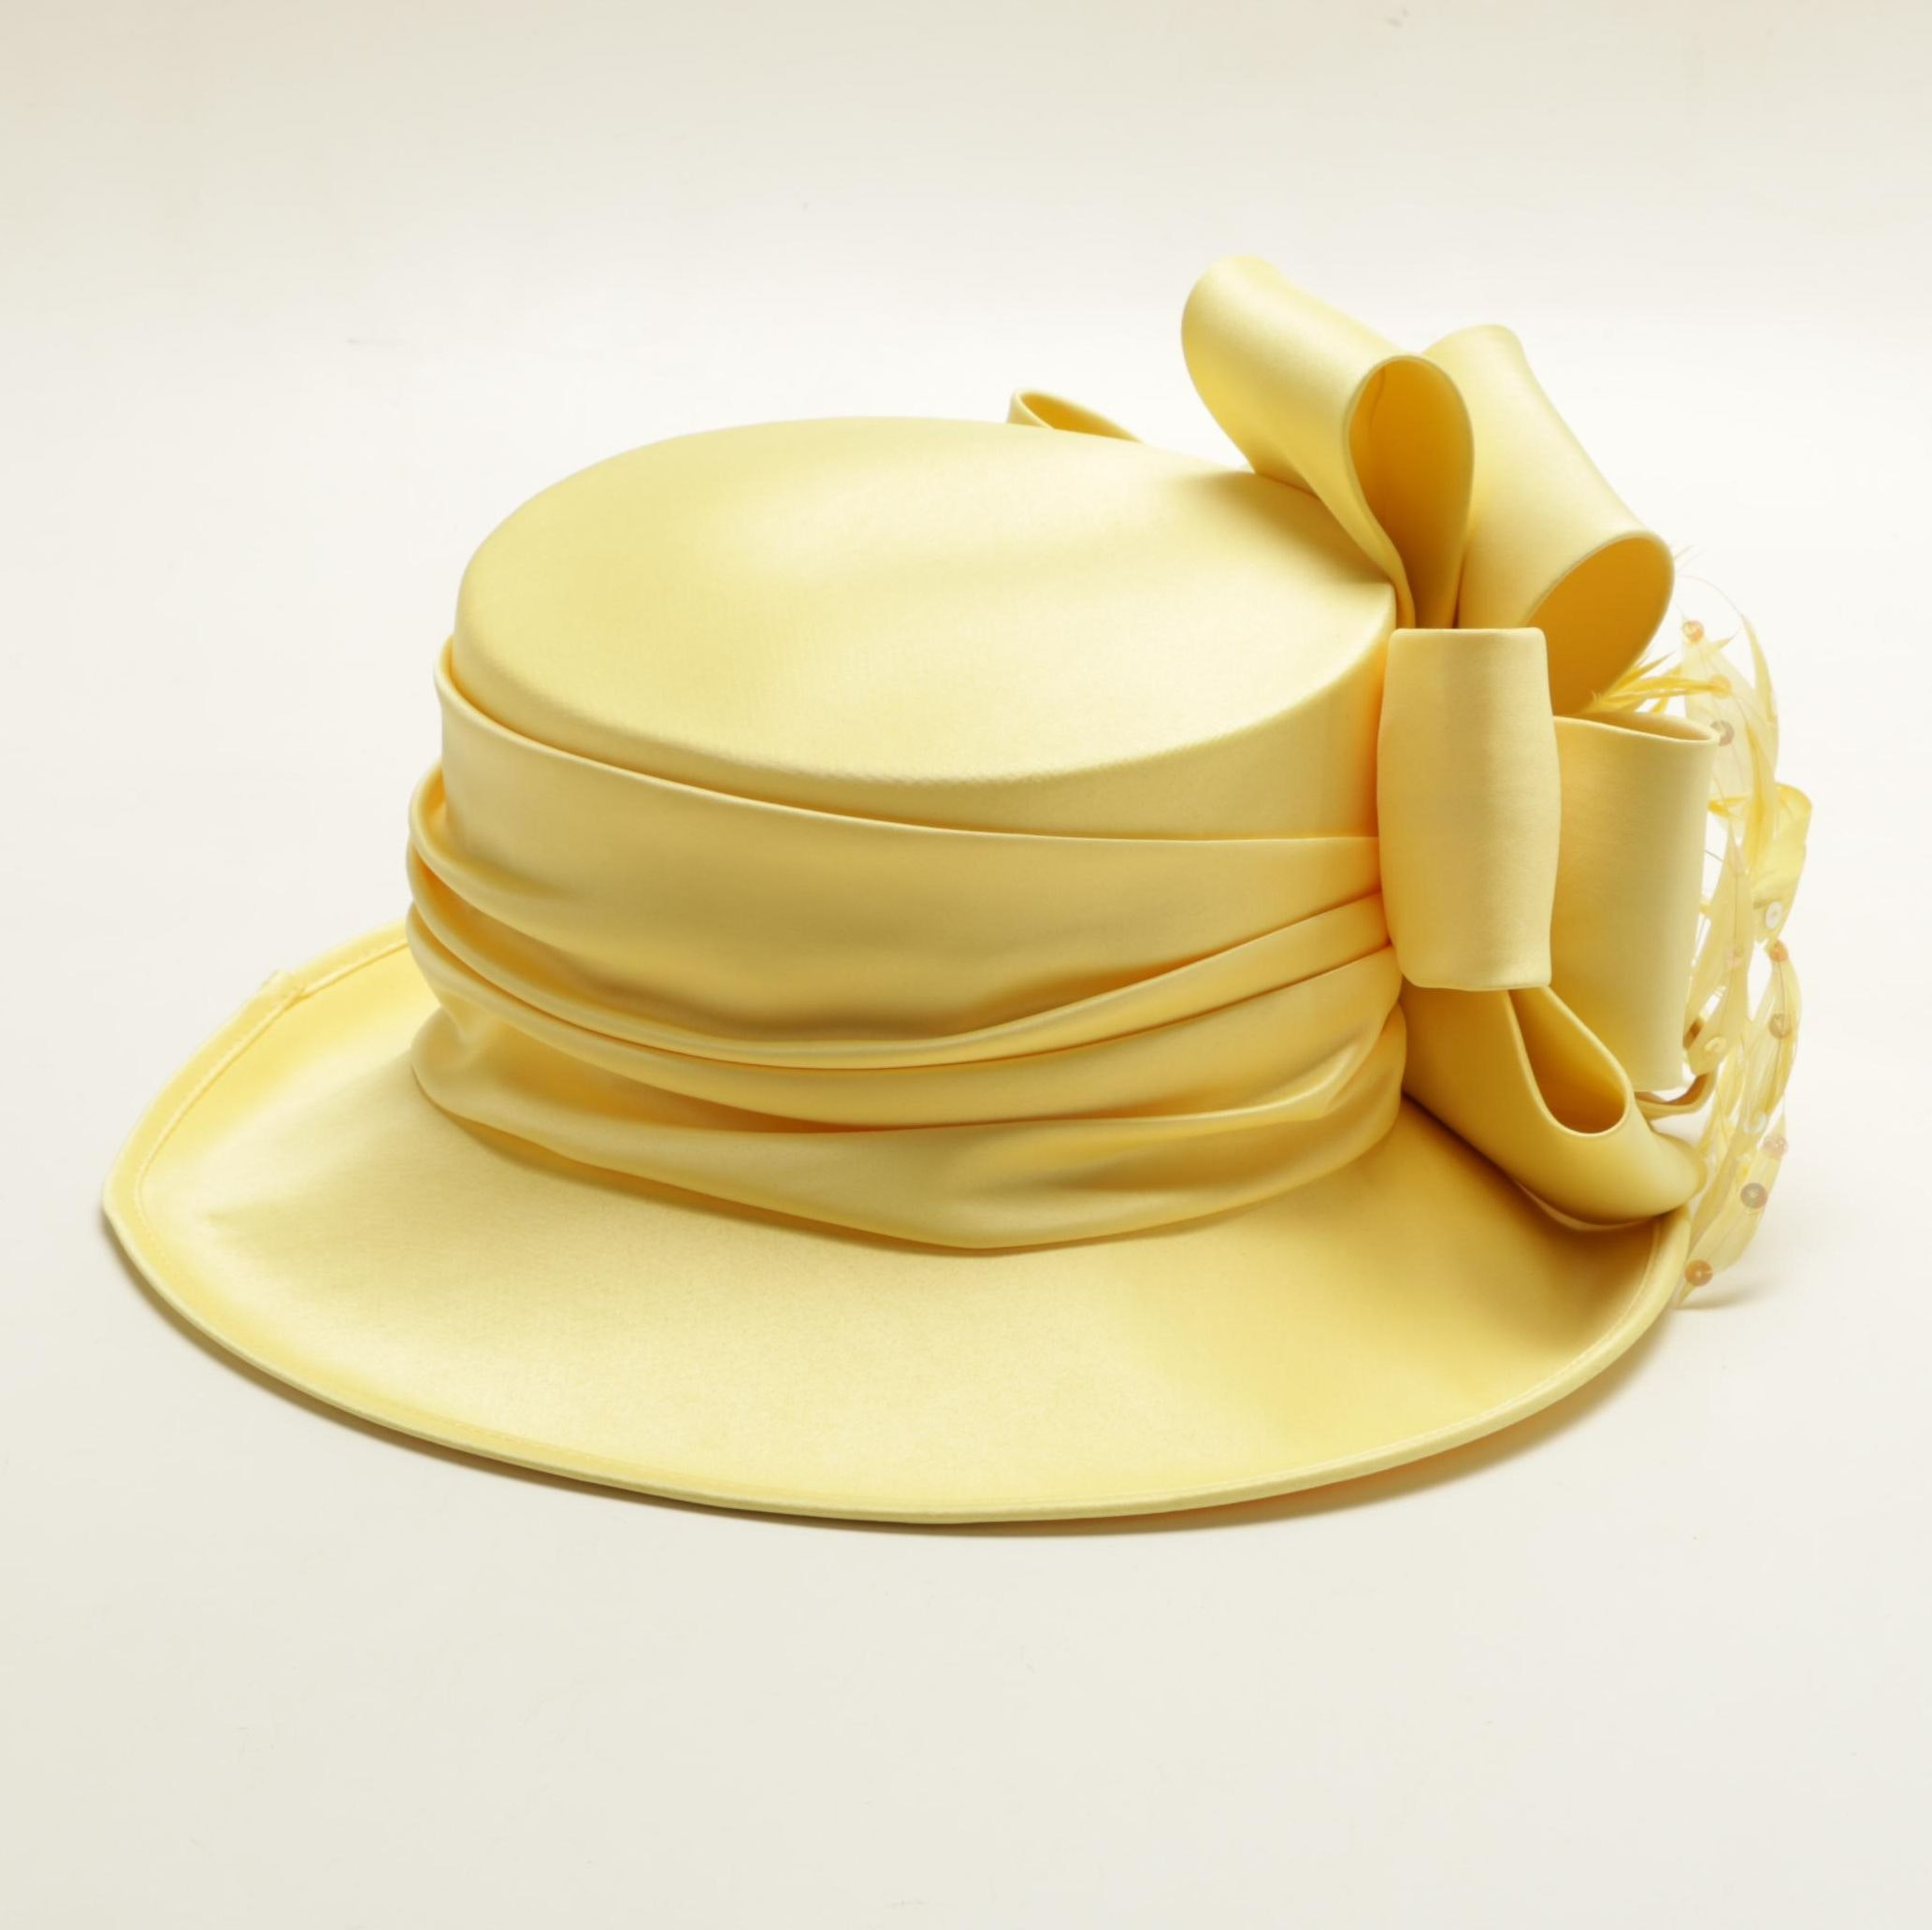 Whitall & Shon Women's Yellow Derby Hat